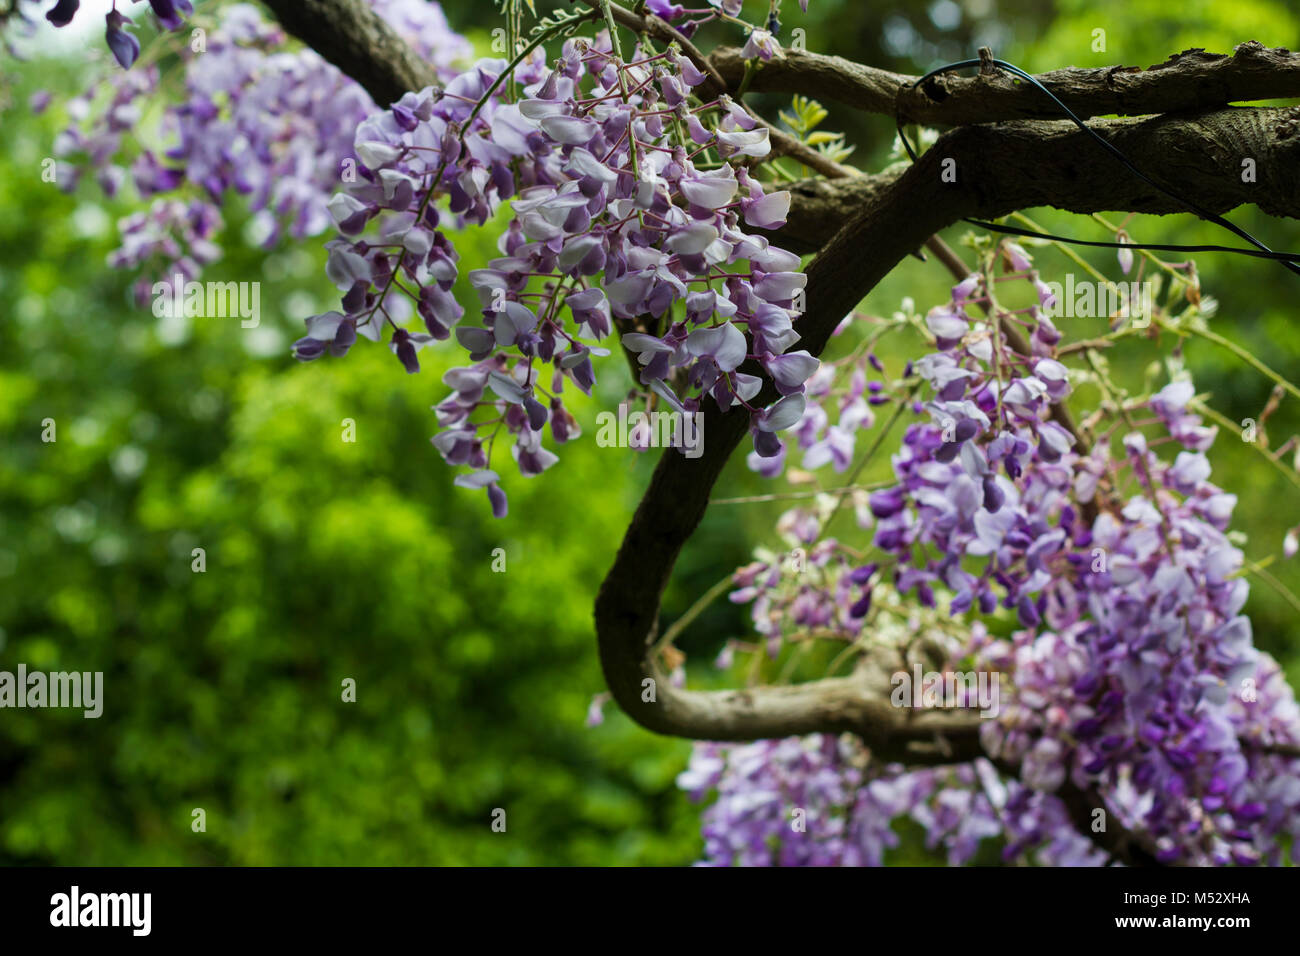 Pink Tree Flowers Shaking With Wind Stock Photo 175241734 Alamy